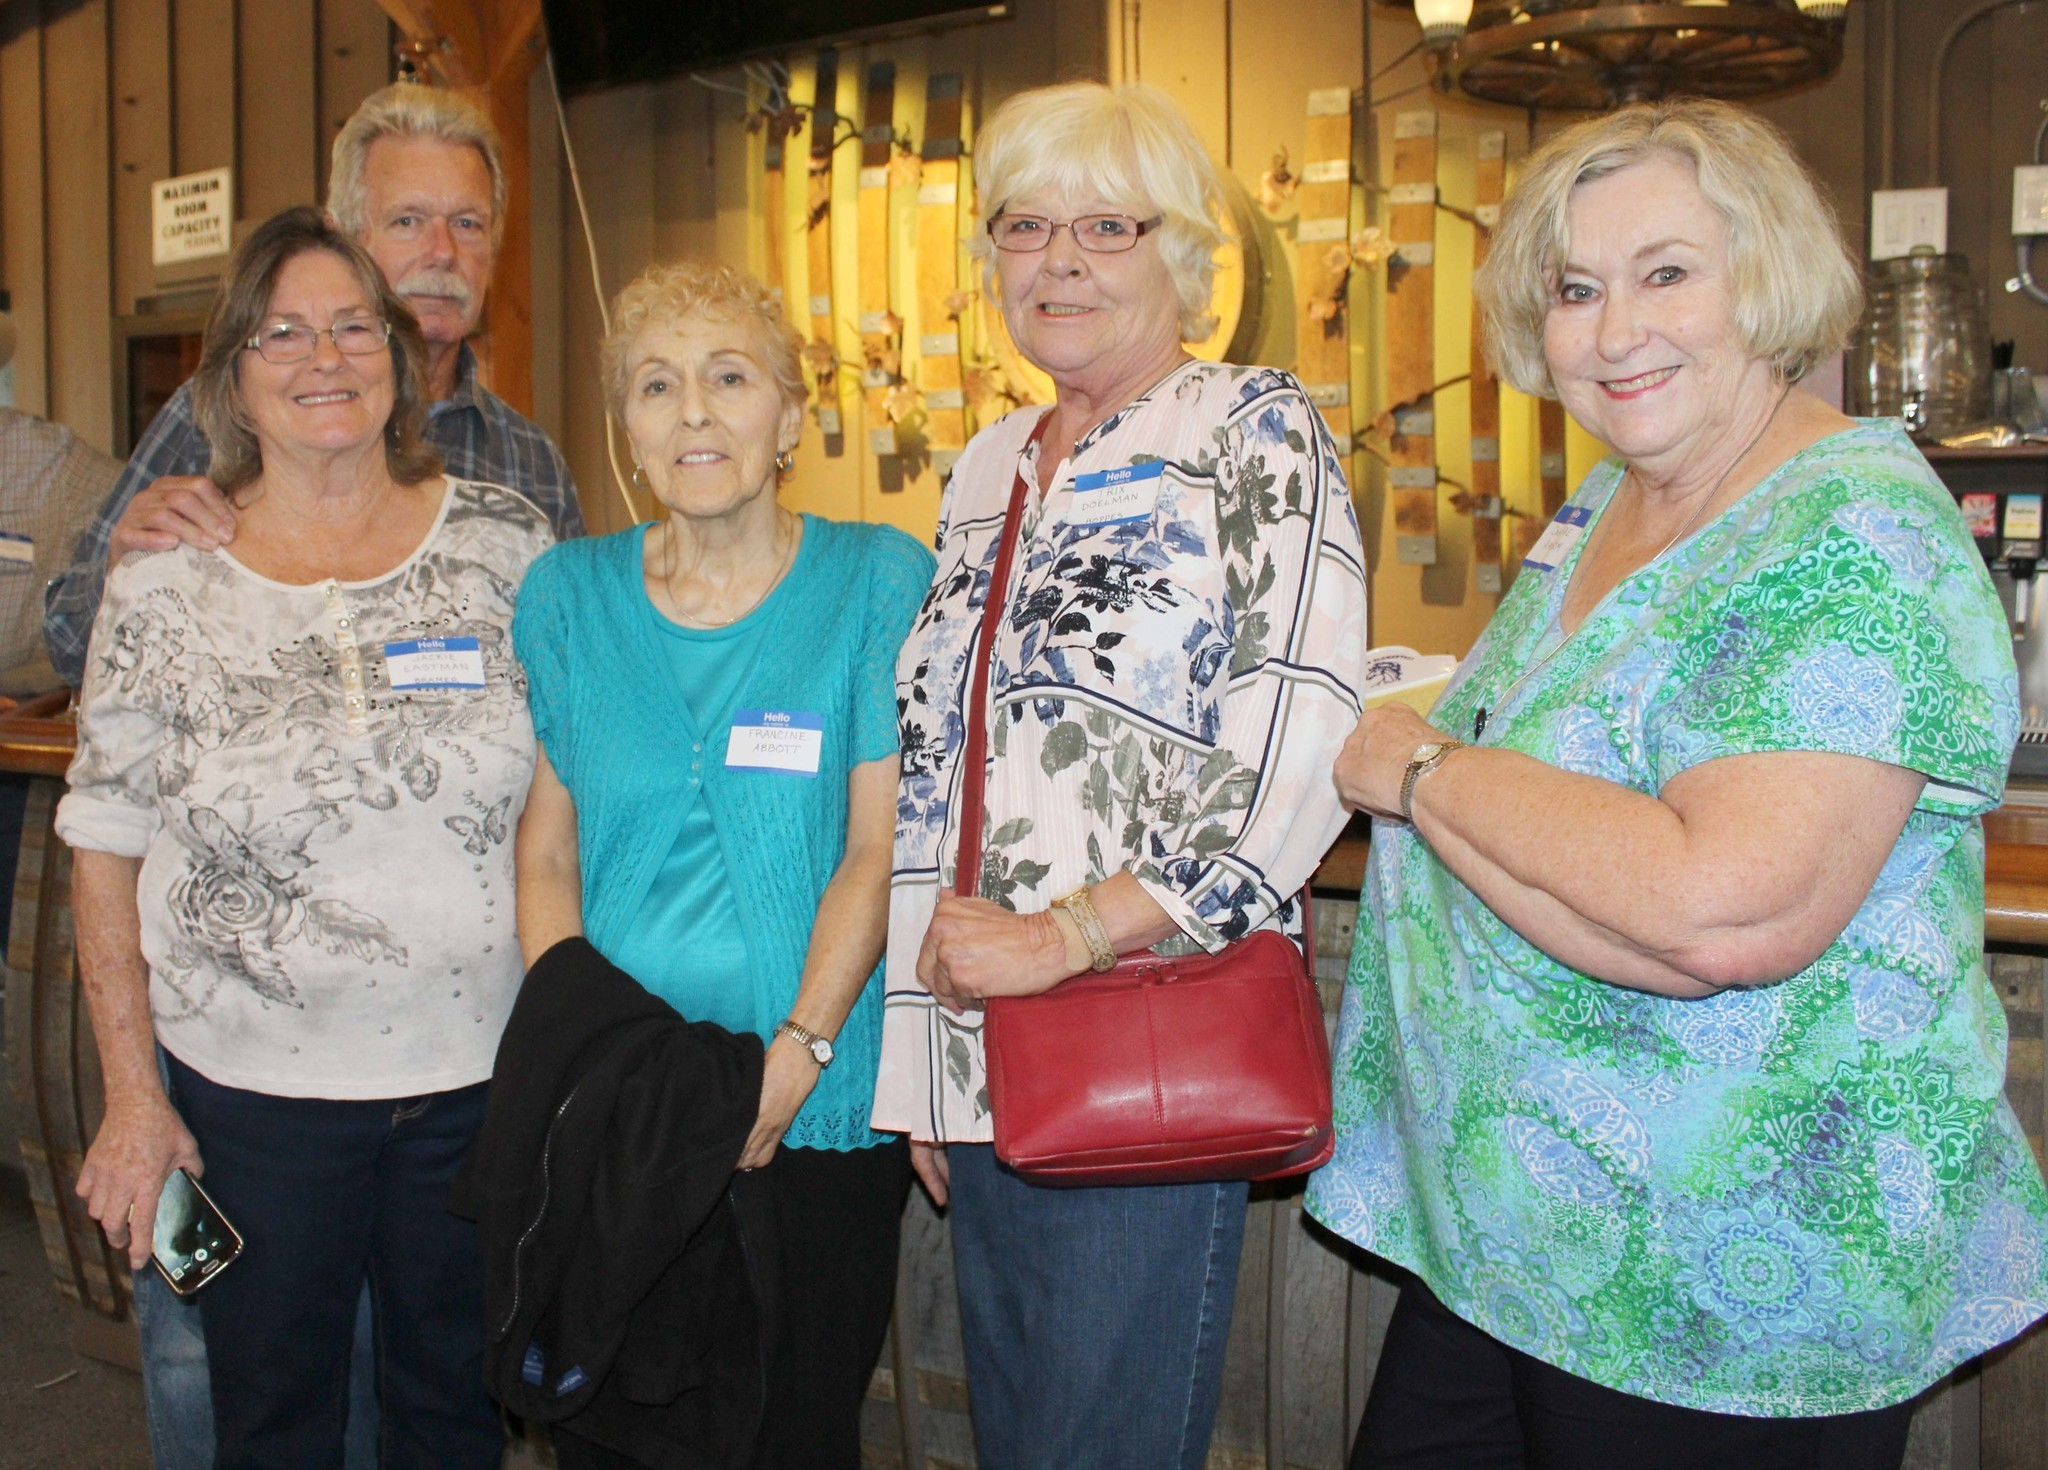 From left, Jackie Eastman Bramer, Ted Bramer, Francine Abbott, Trix Doleman Hoppes and Ona Rae Ransom are among the 27 Ramona High Class of 1968 graduates at the reunion.